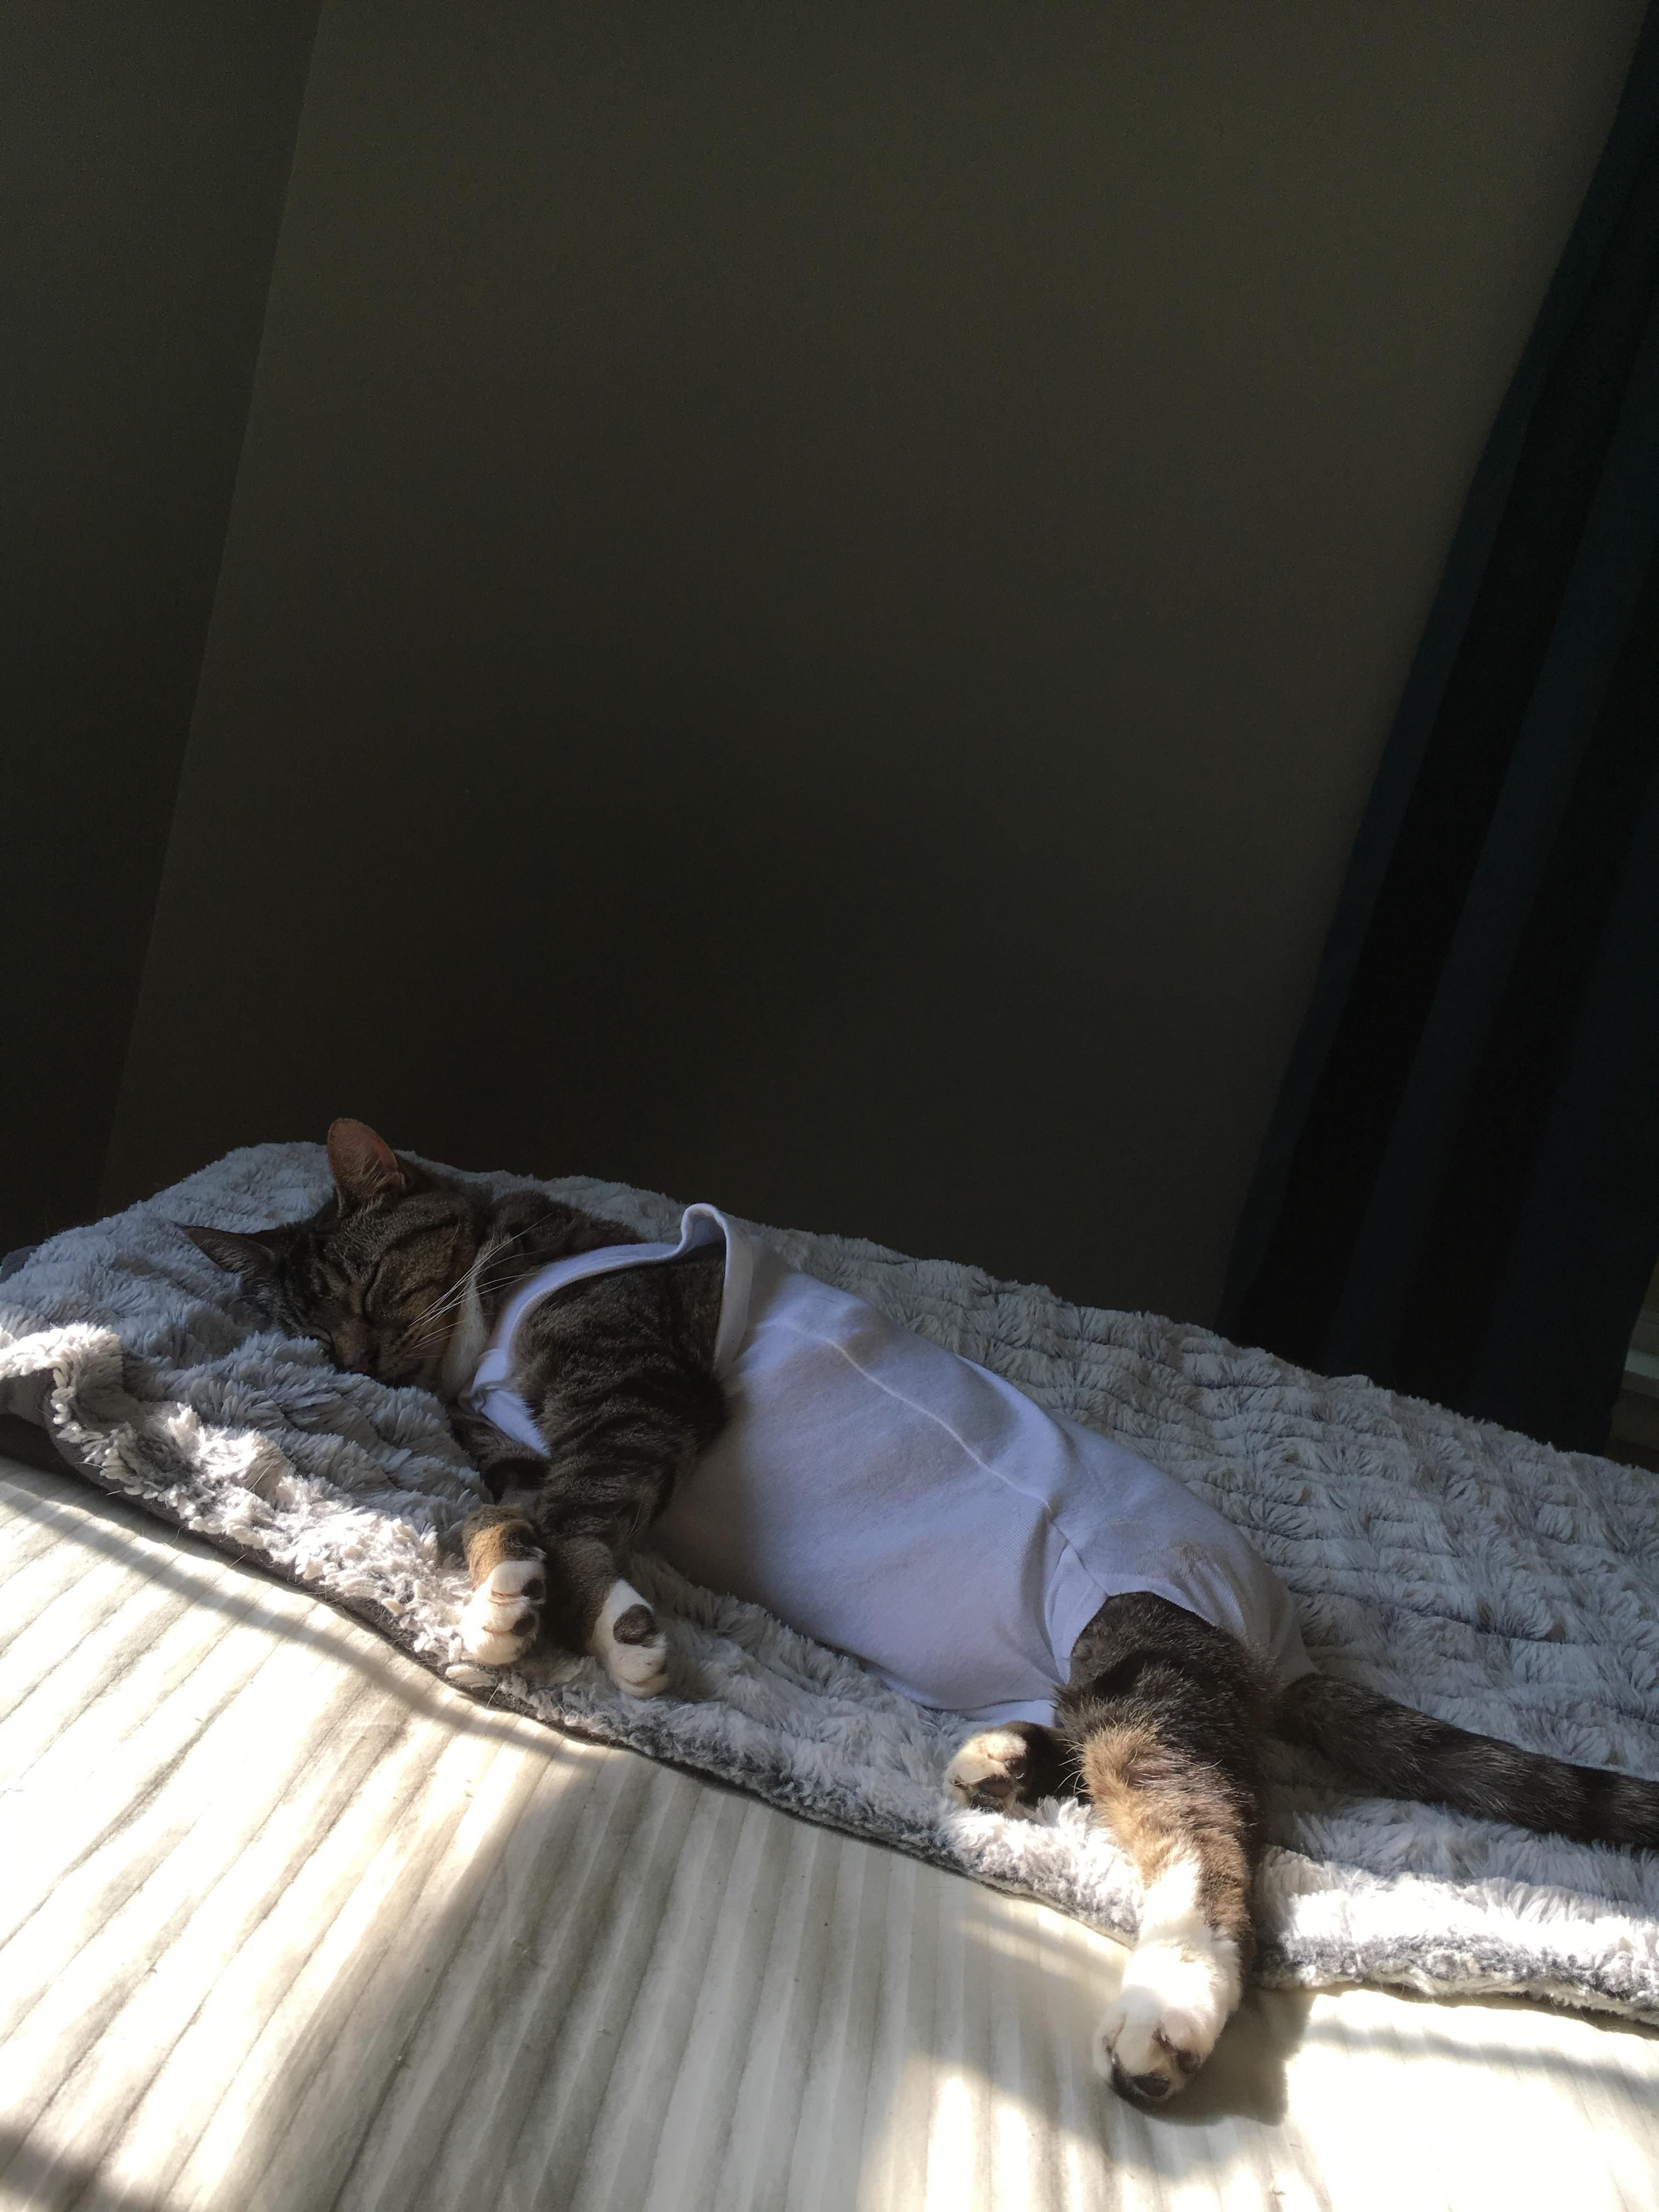 My Cat In A Onesie After Her Surgeryhttps I Redd It Iirjcuef9px01 Jpg Cats Youtube Cats Cat Sitting